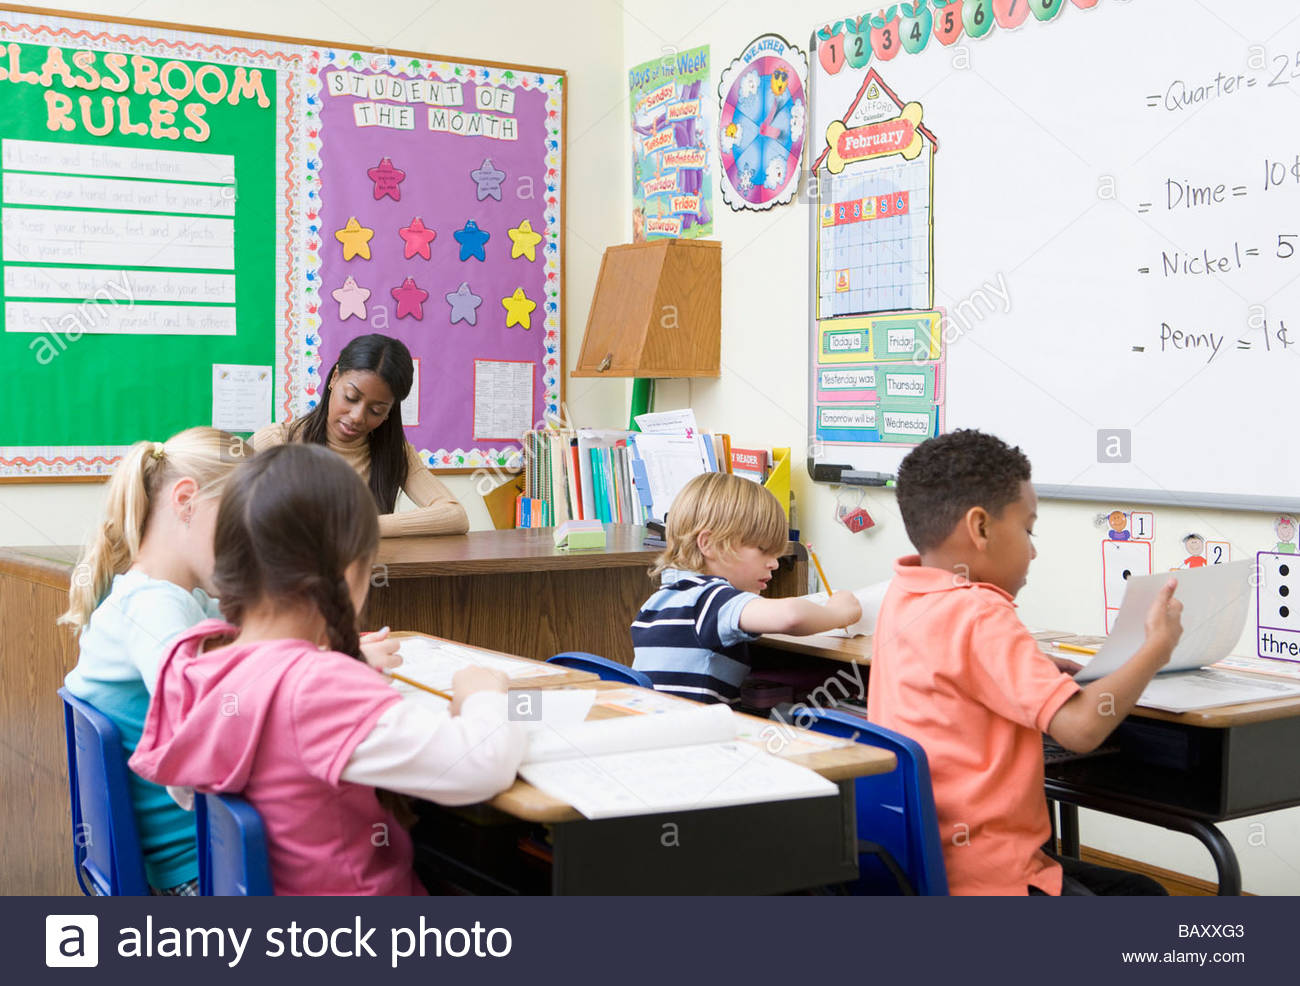 Students sitting at desks in classroom - Stock Image